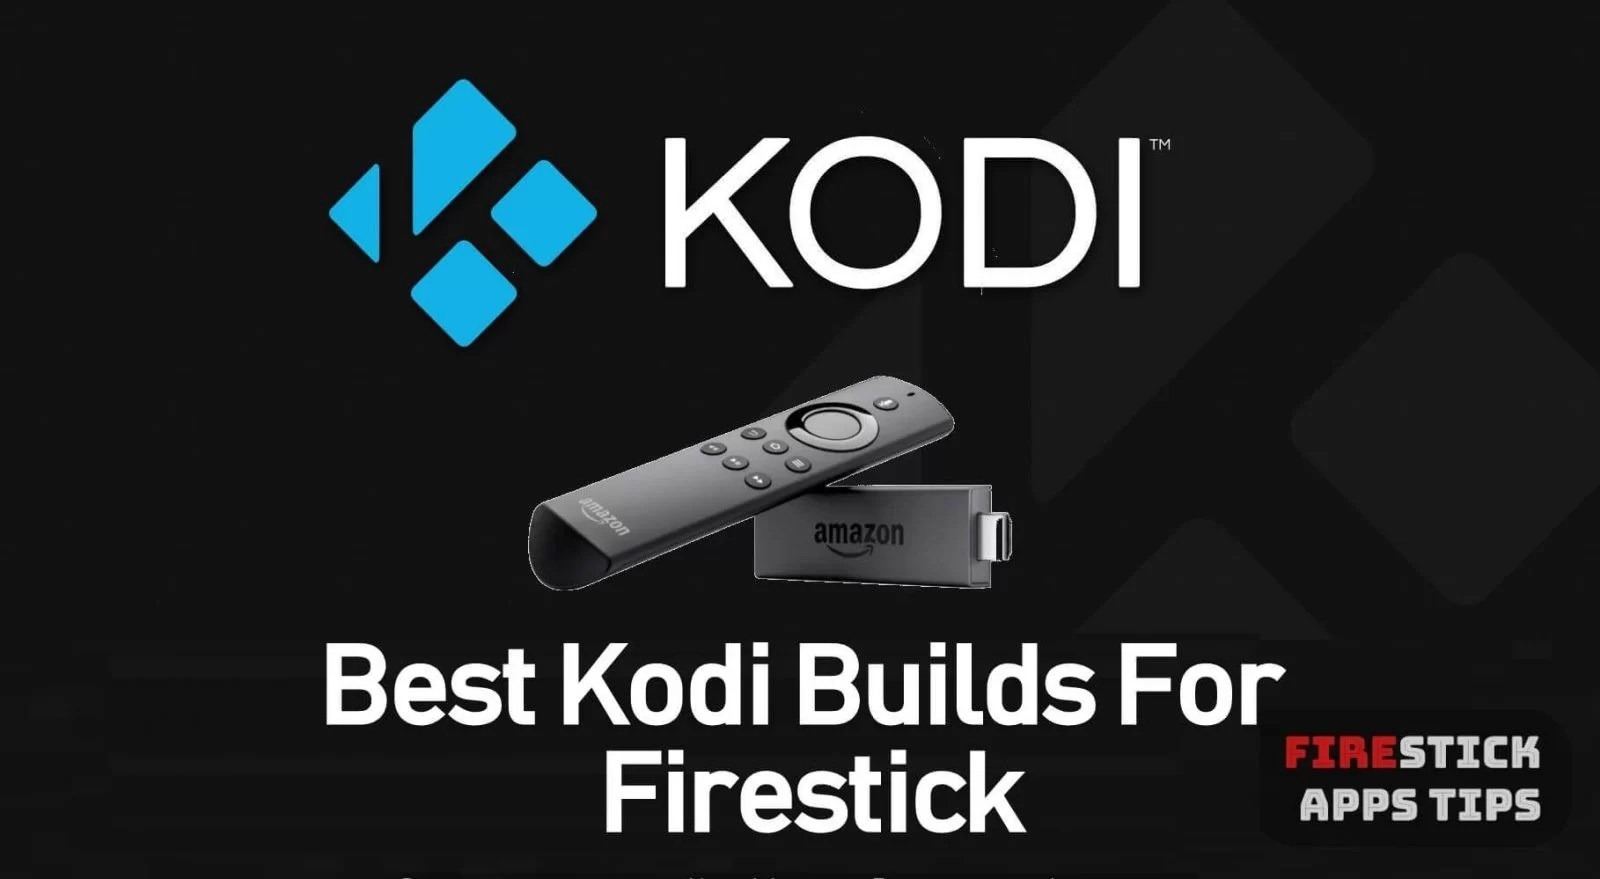 15 Best Kodi Builds for Firestick [2019] With Installation